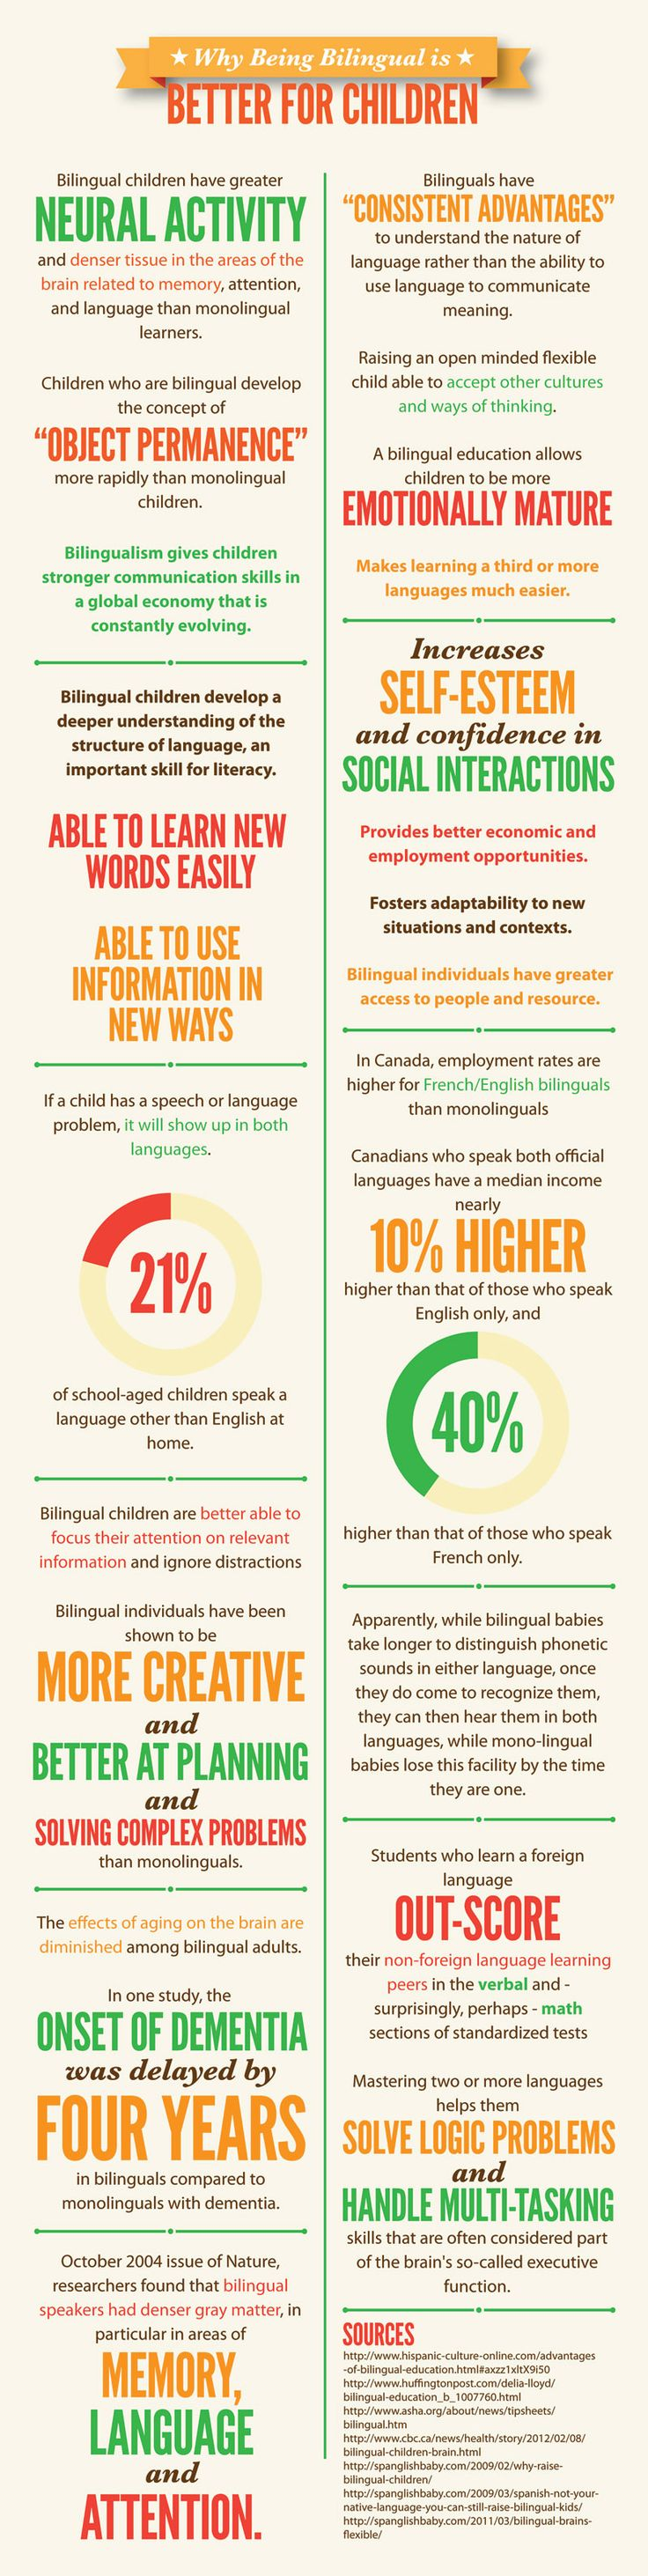 what are the advantages of being bilingual essay about books essay what are the advantages of being bilingual essay